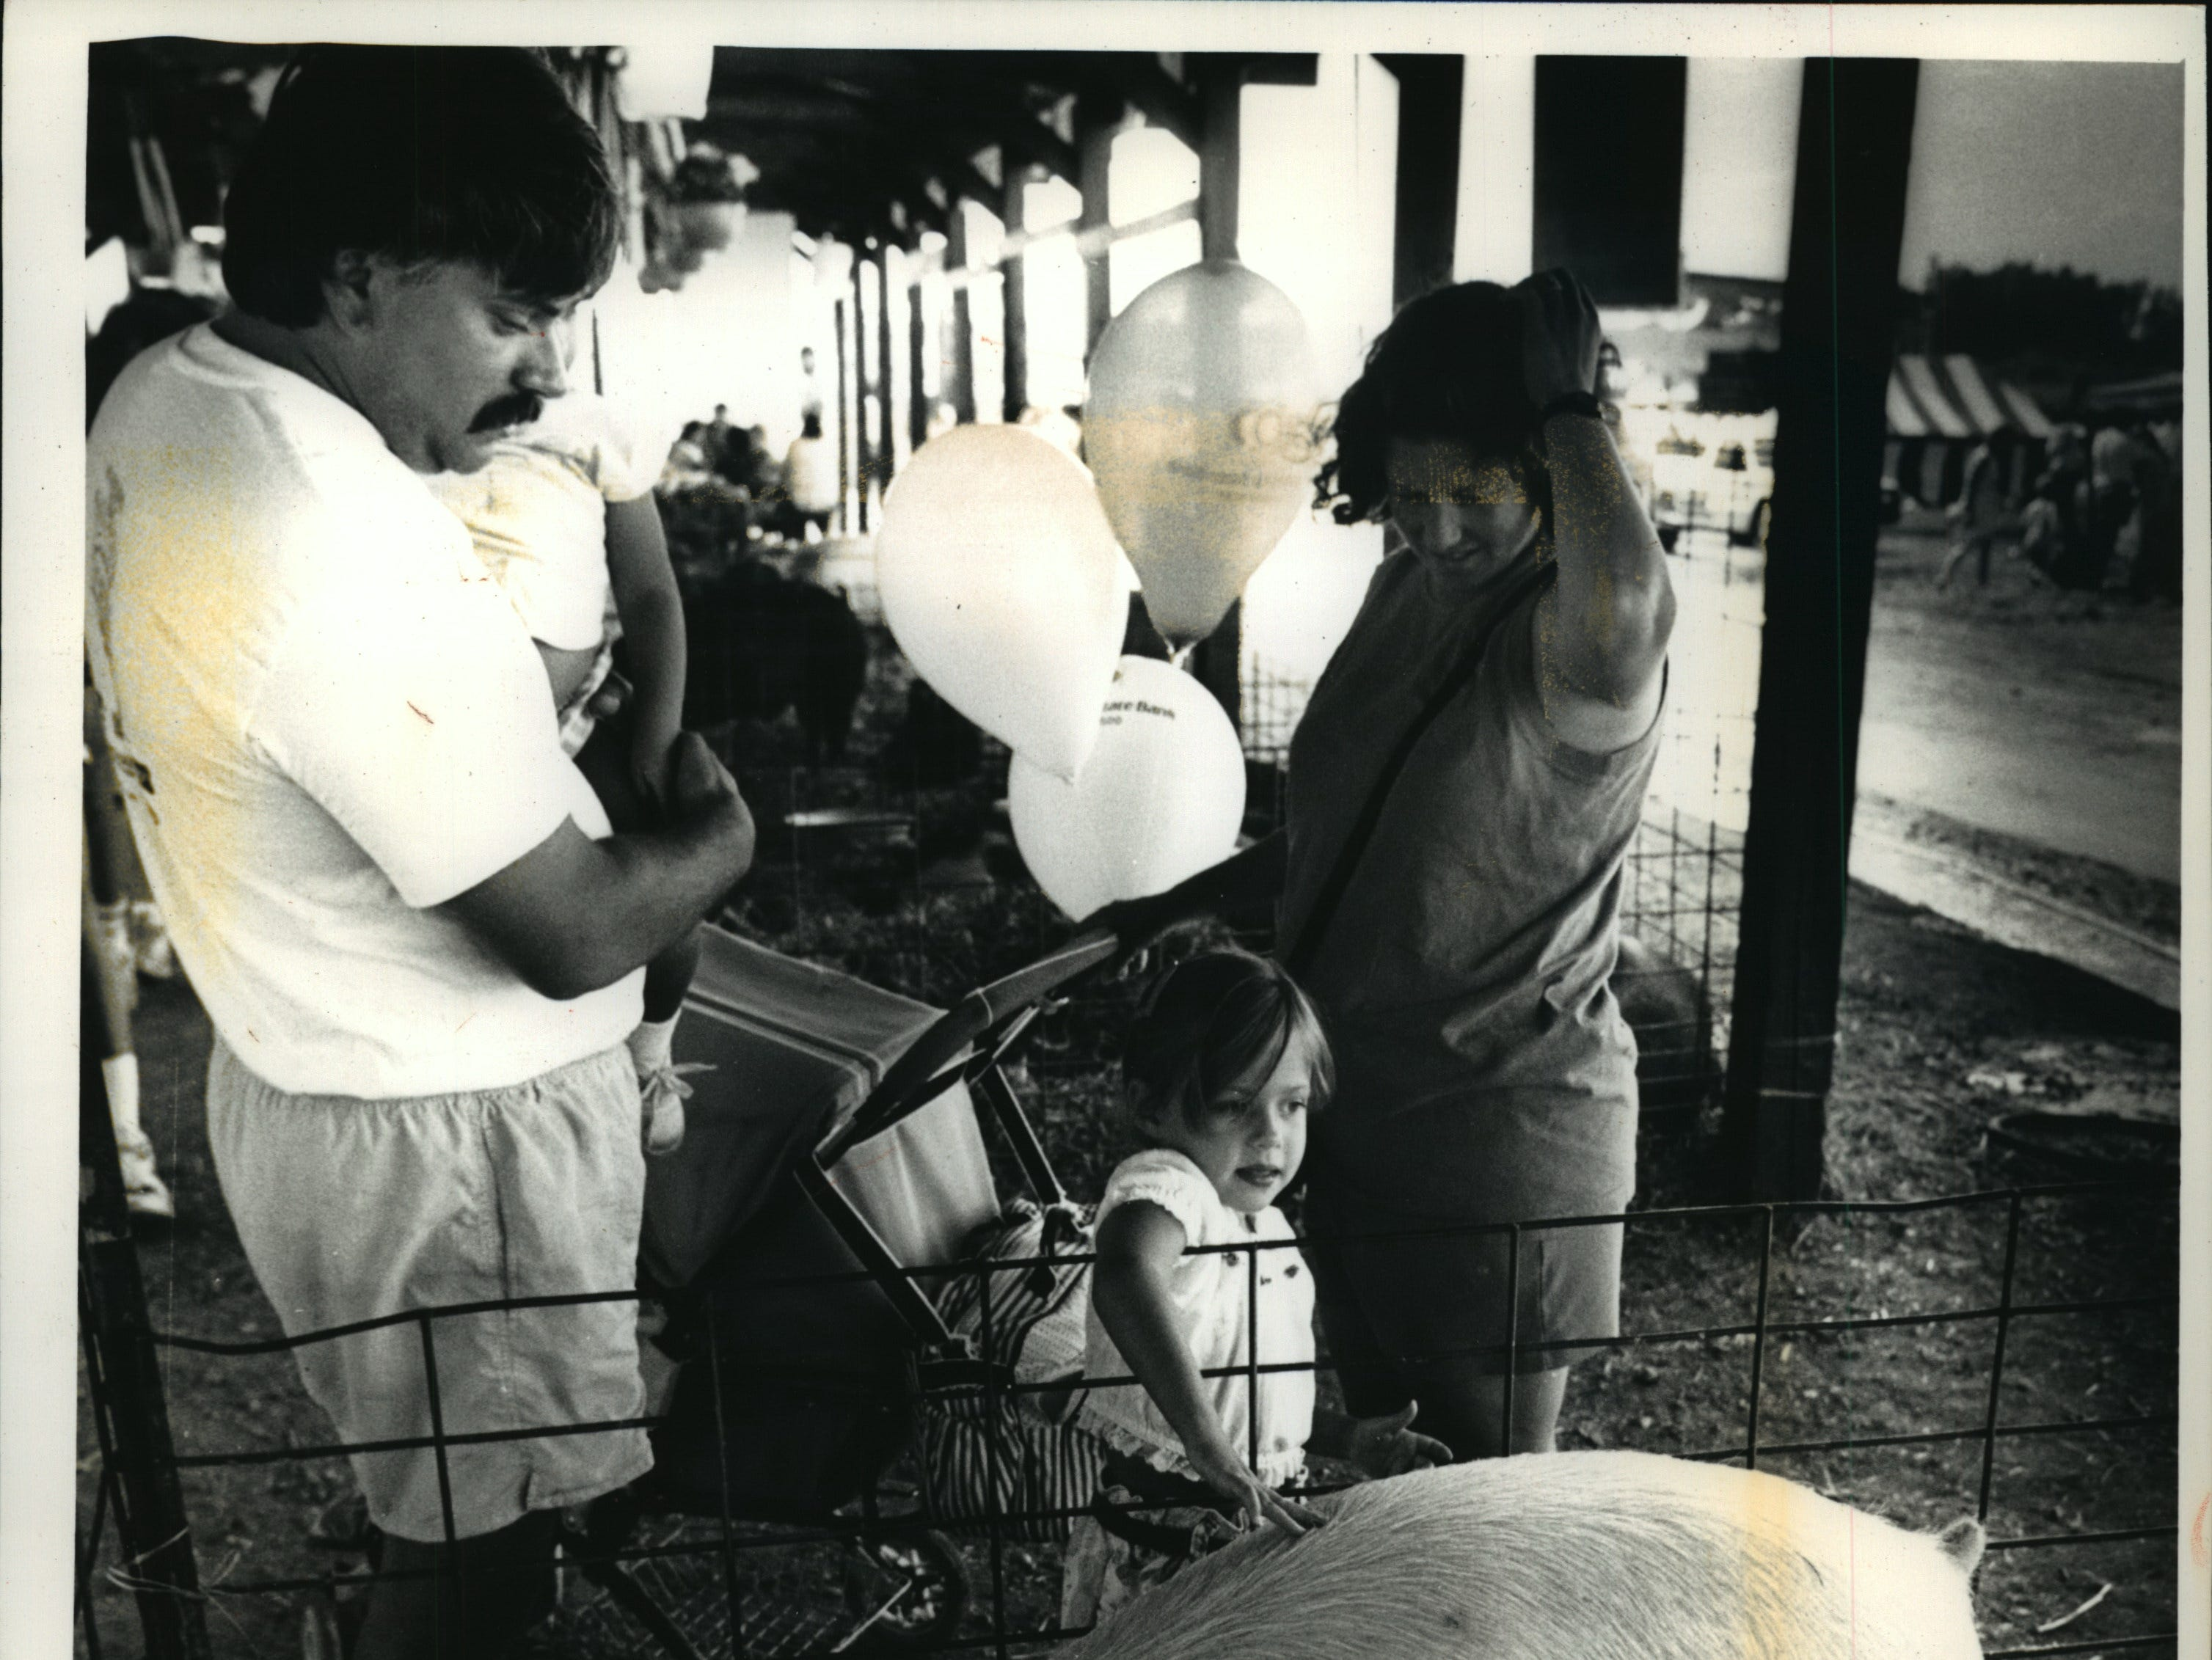 Larry Marx and his wife, Lisa, formerly of Waukesha but now of Madison, watch as their daughter Rachel, 4, pets a pig at the Waukesha County Fair Sunday. Mom holds Chloe, 2,  and 7-week-old Emma sleeps in the carriage.